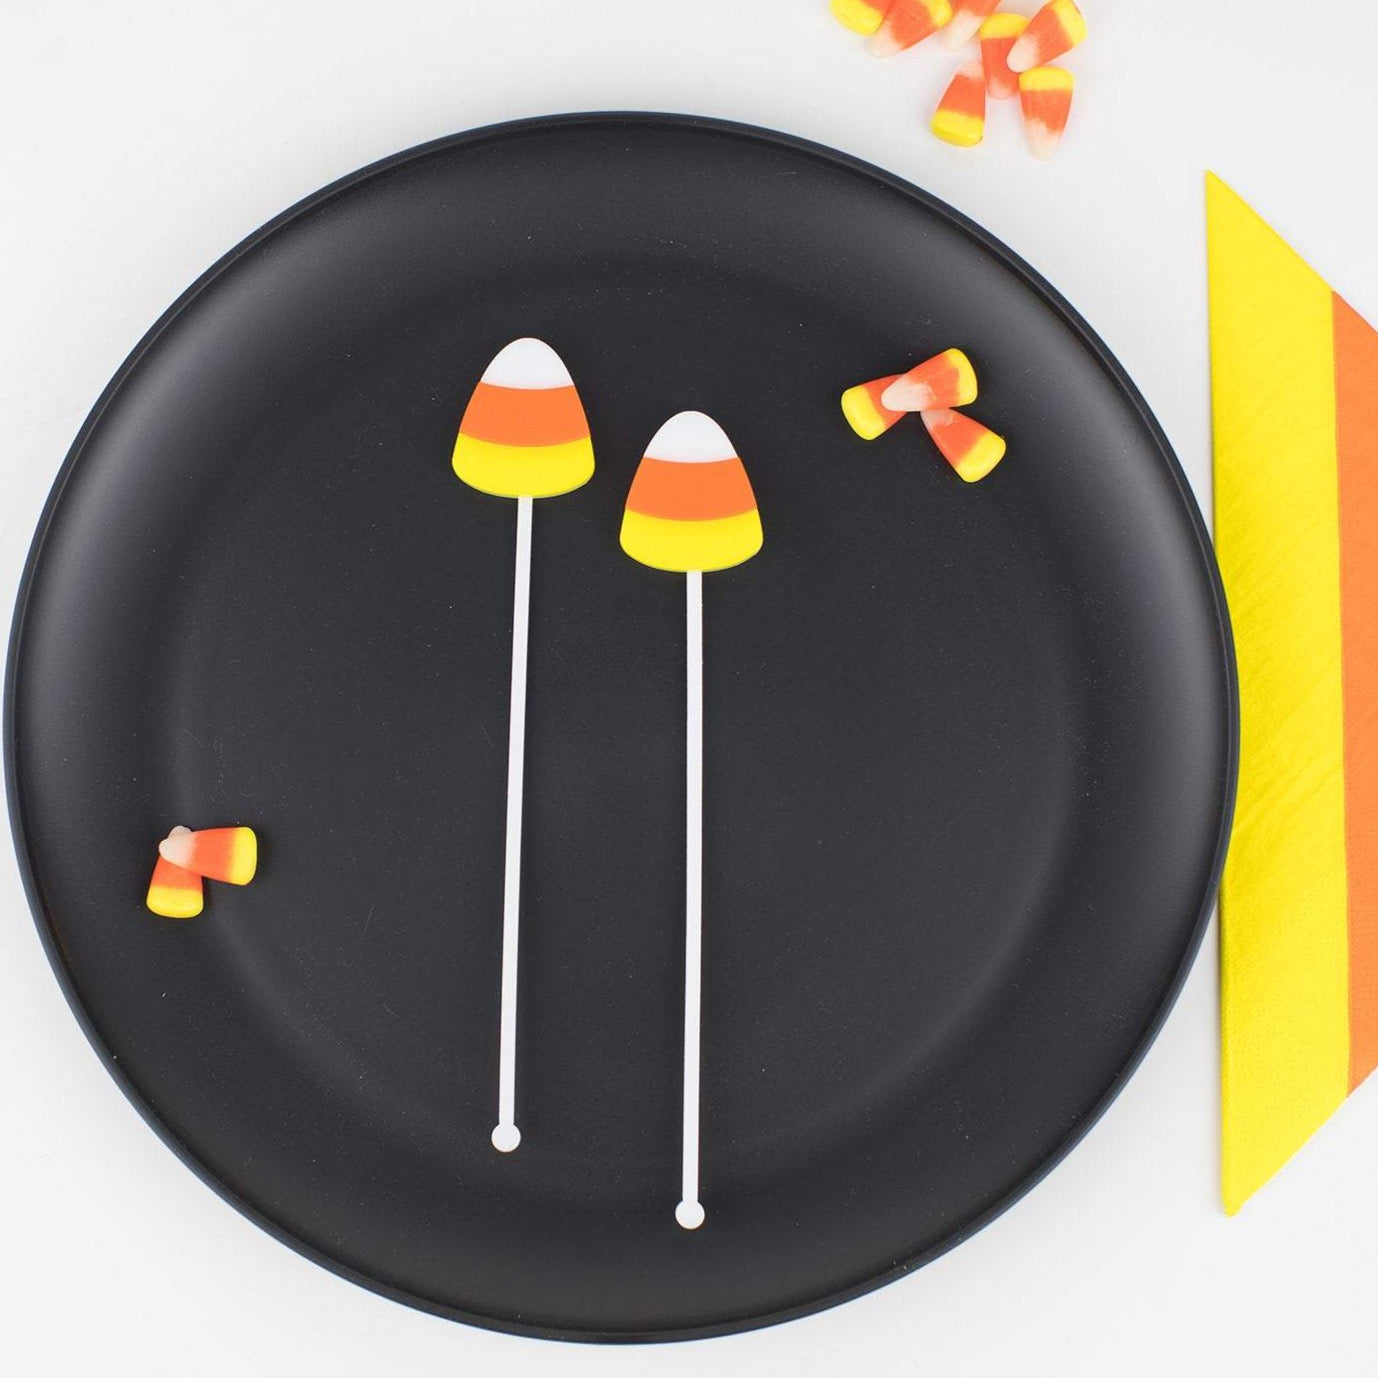 Candy Corn Stir Sticks, Swizzle Sticks, Drink Stirrers Laser Cut, Acrylic, 6 Ct. - Halloween Party - Candy Corn Party - Birthday - Halloween